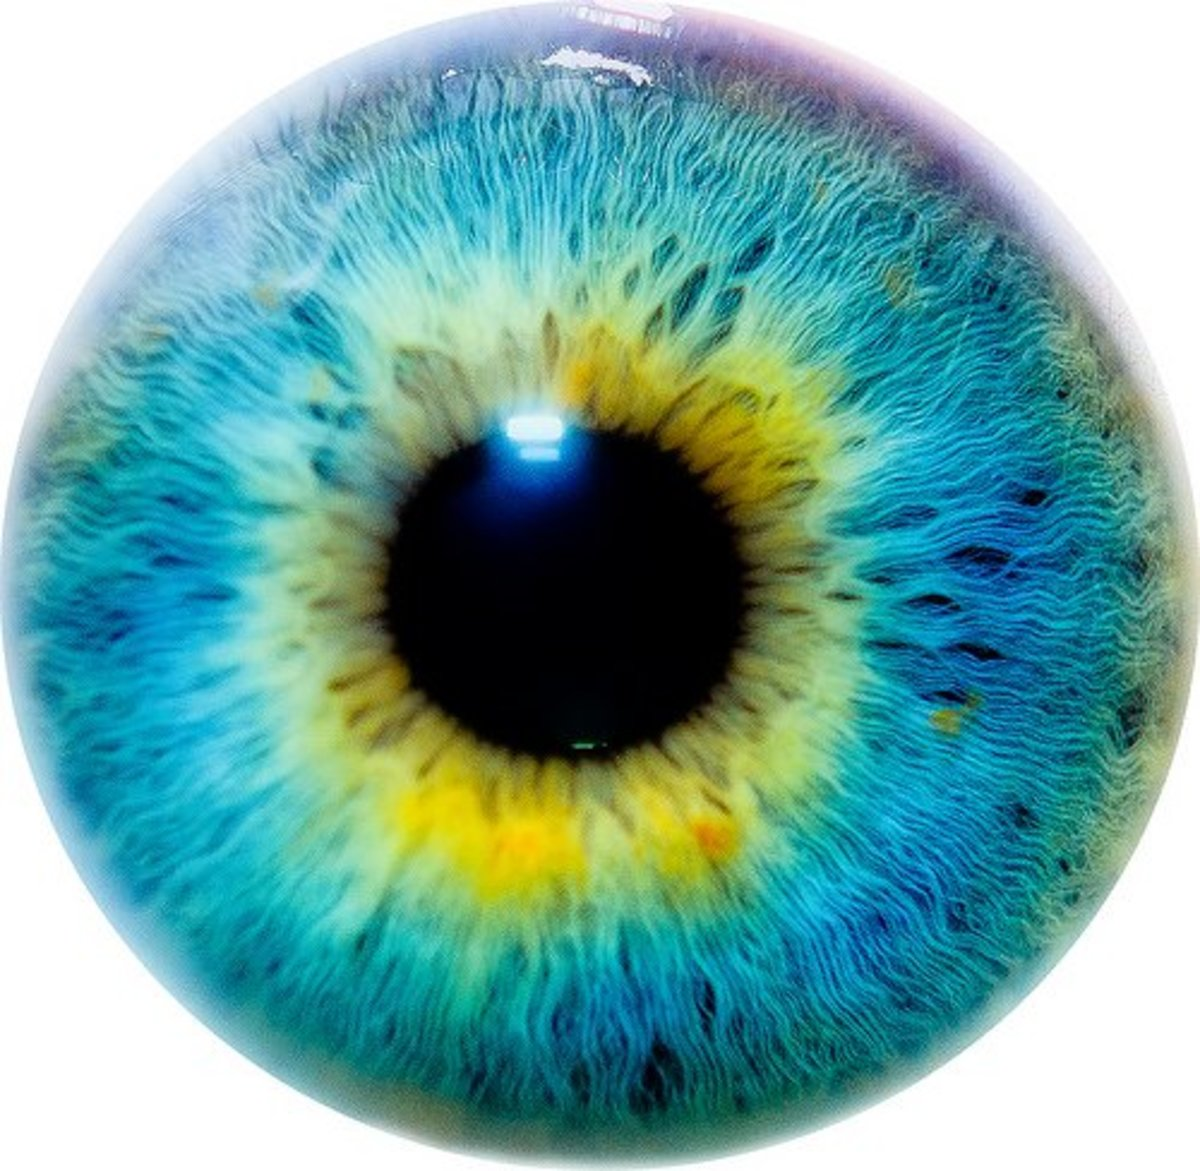 Does Eye Color Indicate Intelligence or Personality?  What Are Your Eyes Telling the World?